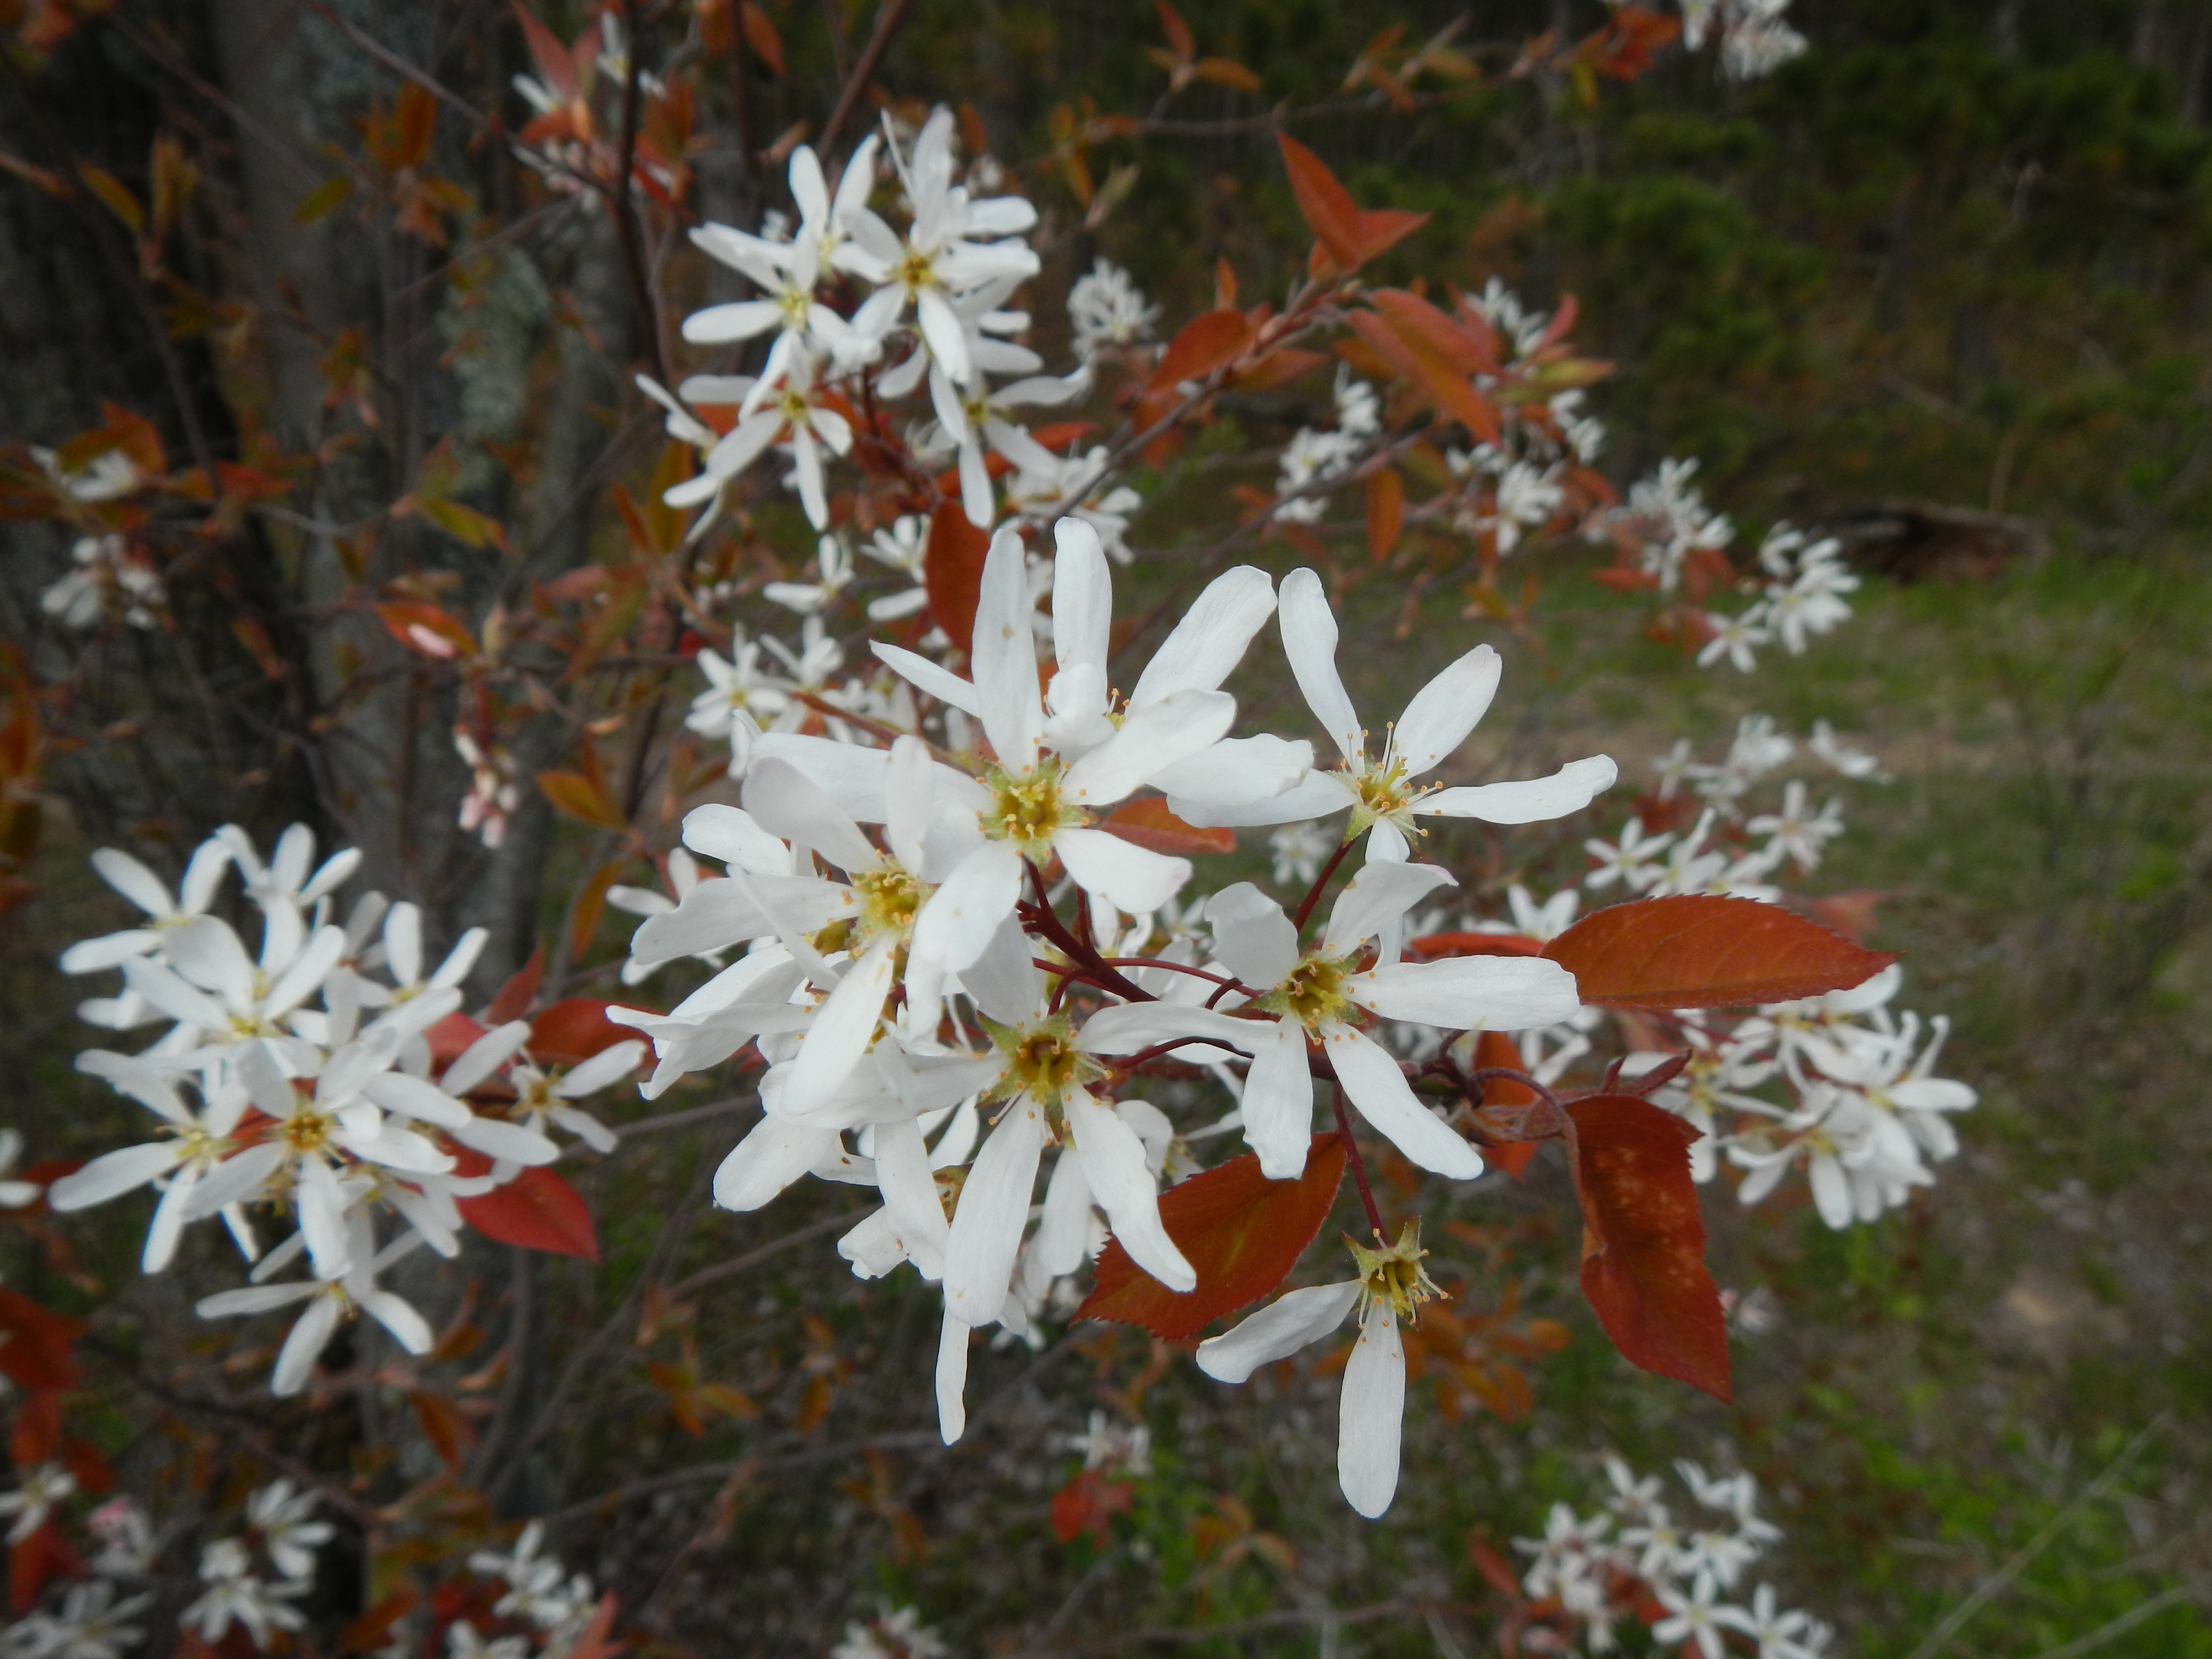 Serviceberries in bloom along the Au Sable